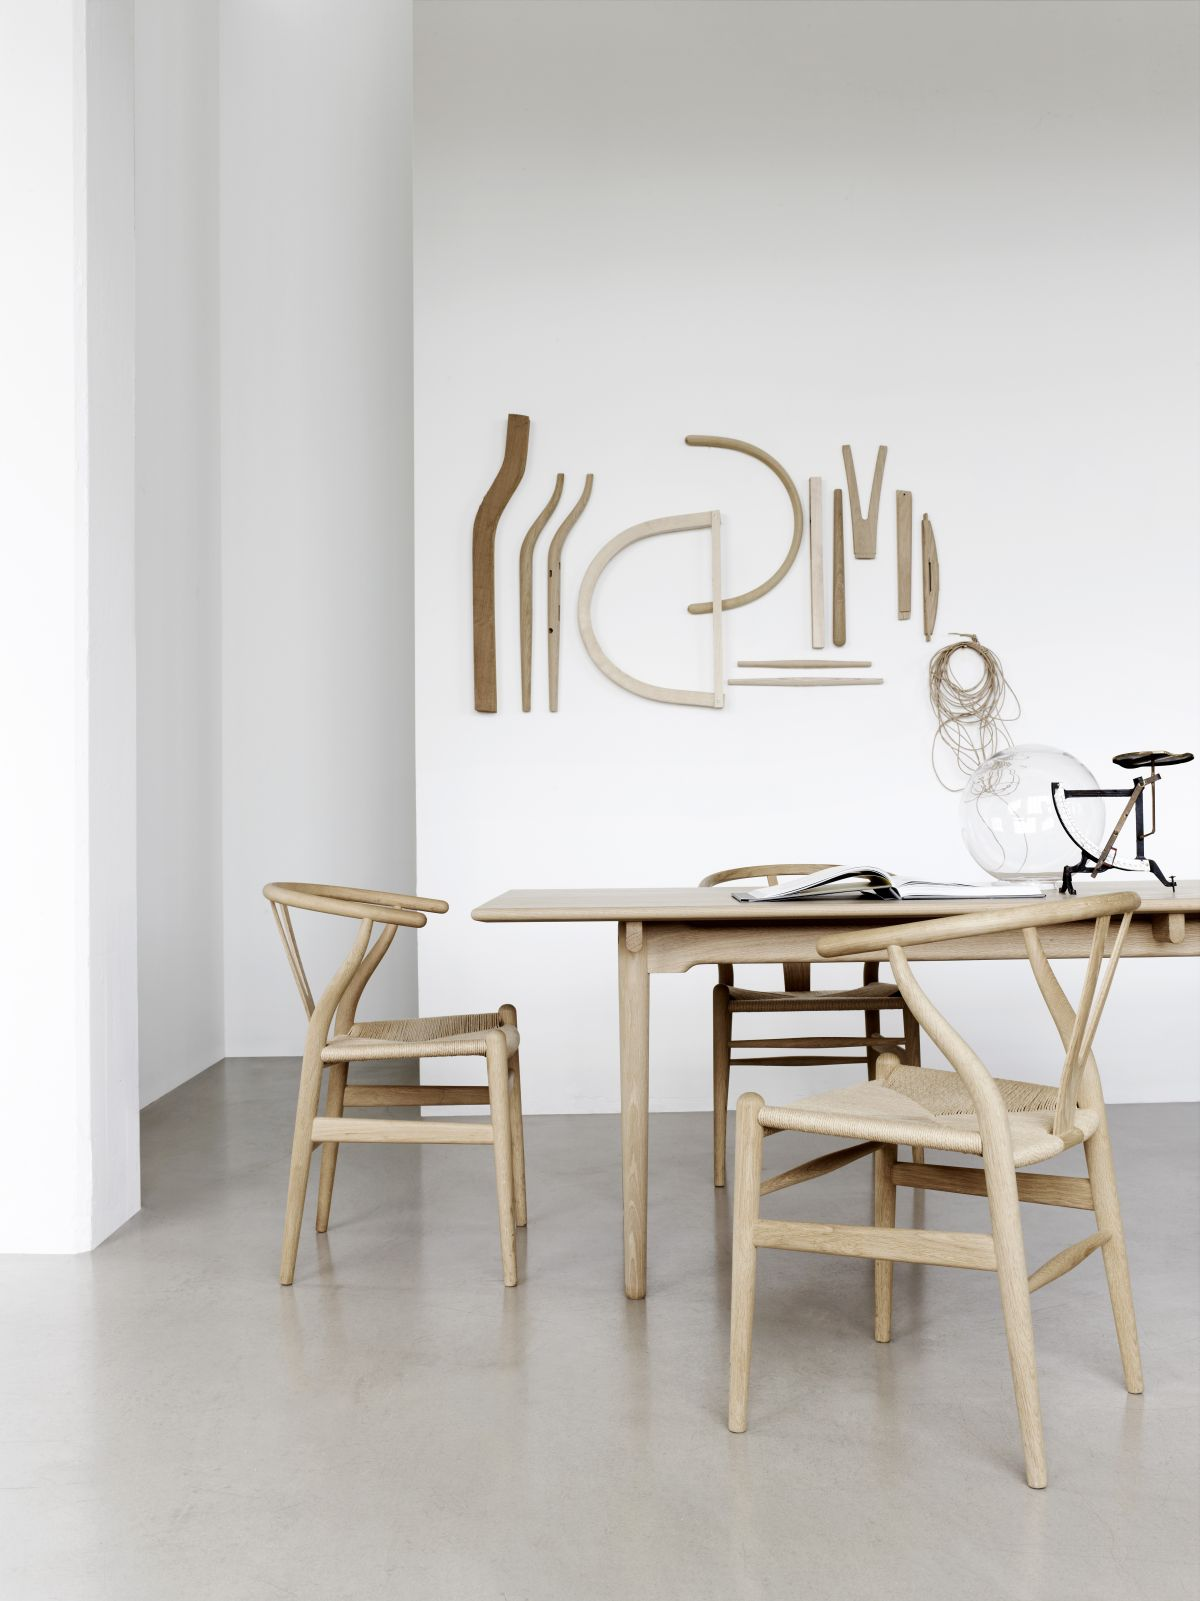 A Closer Look At The Iconic Design The Wishbone Chair